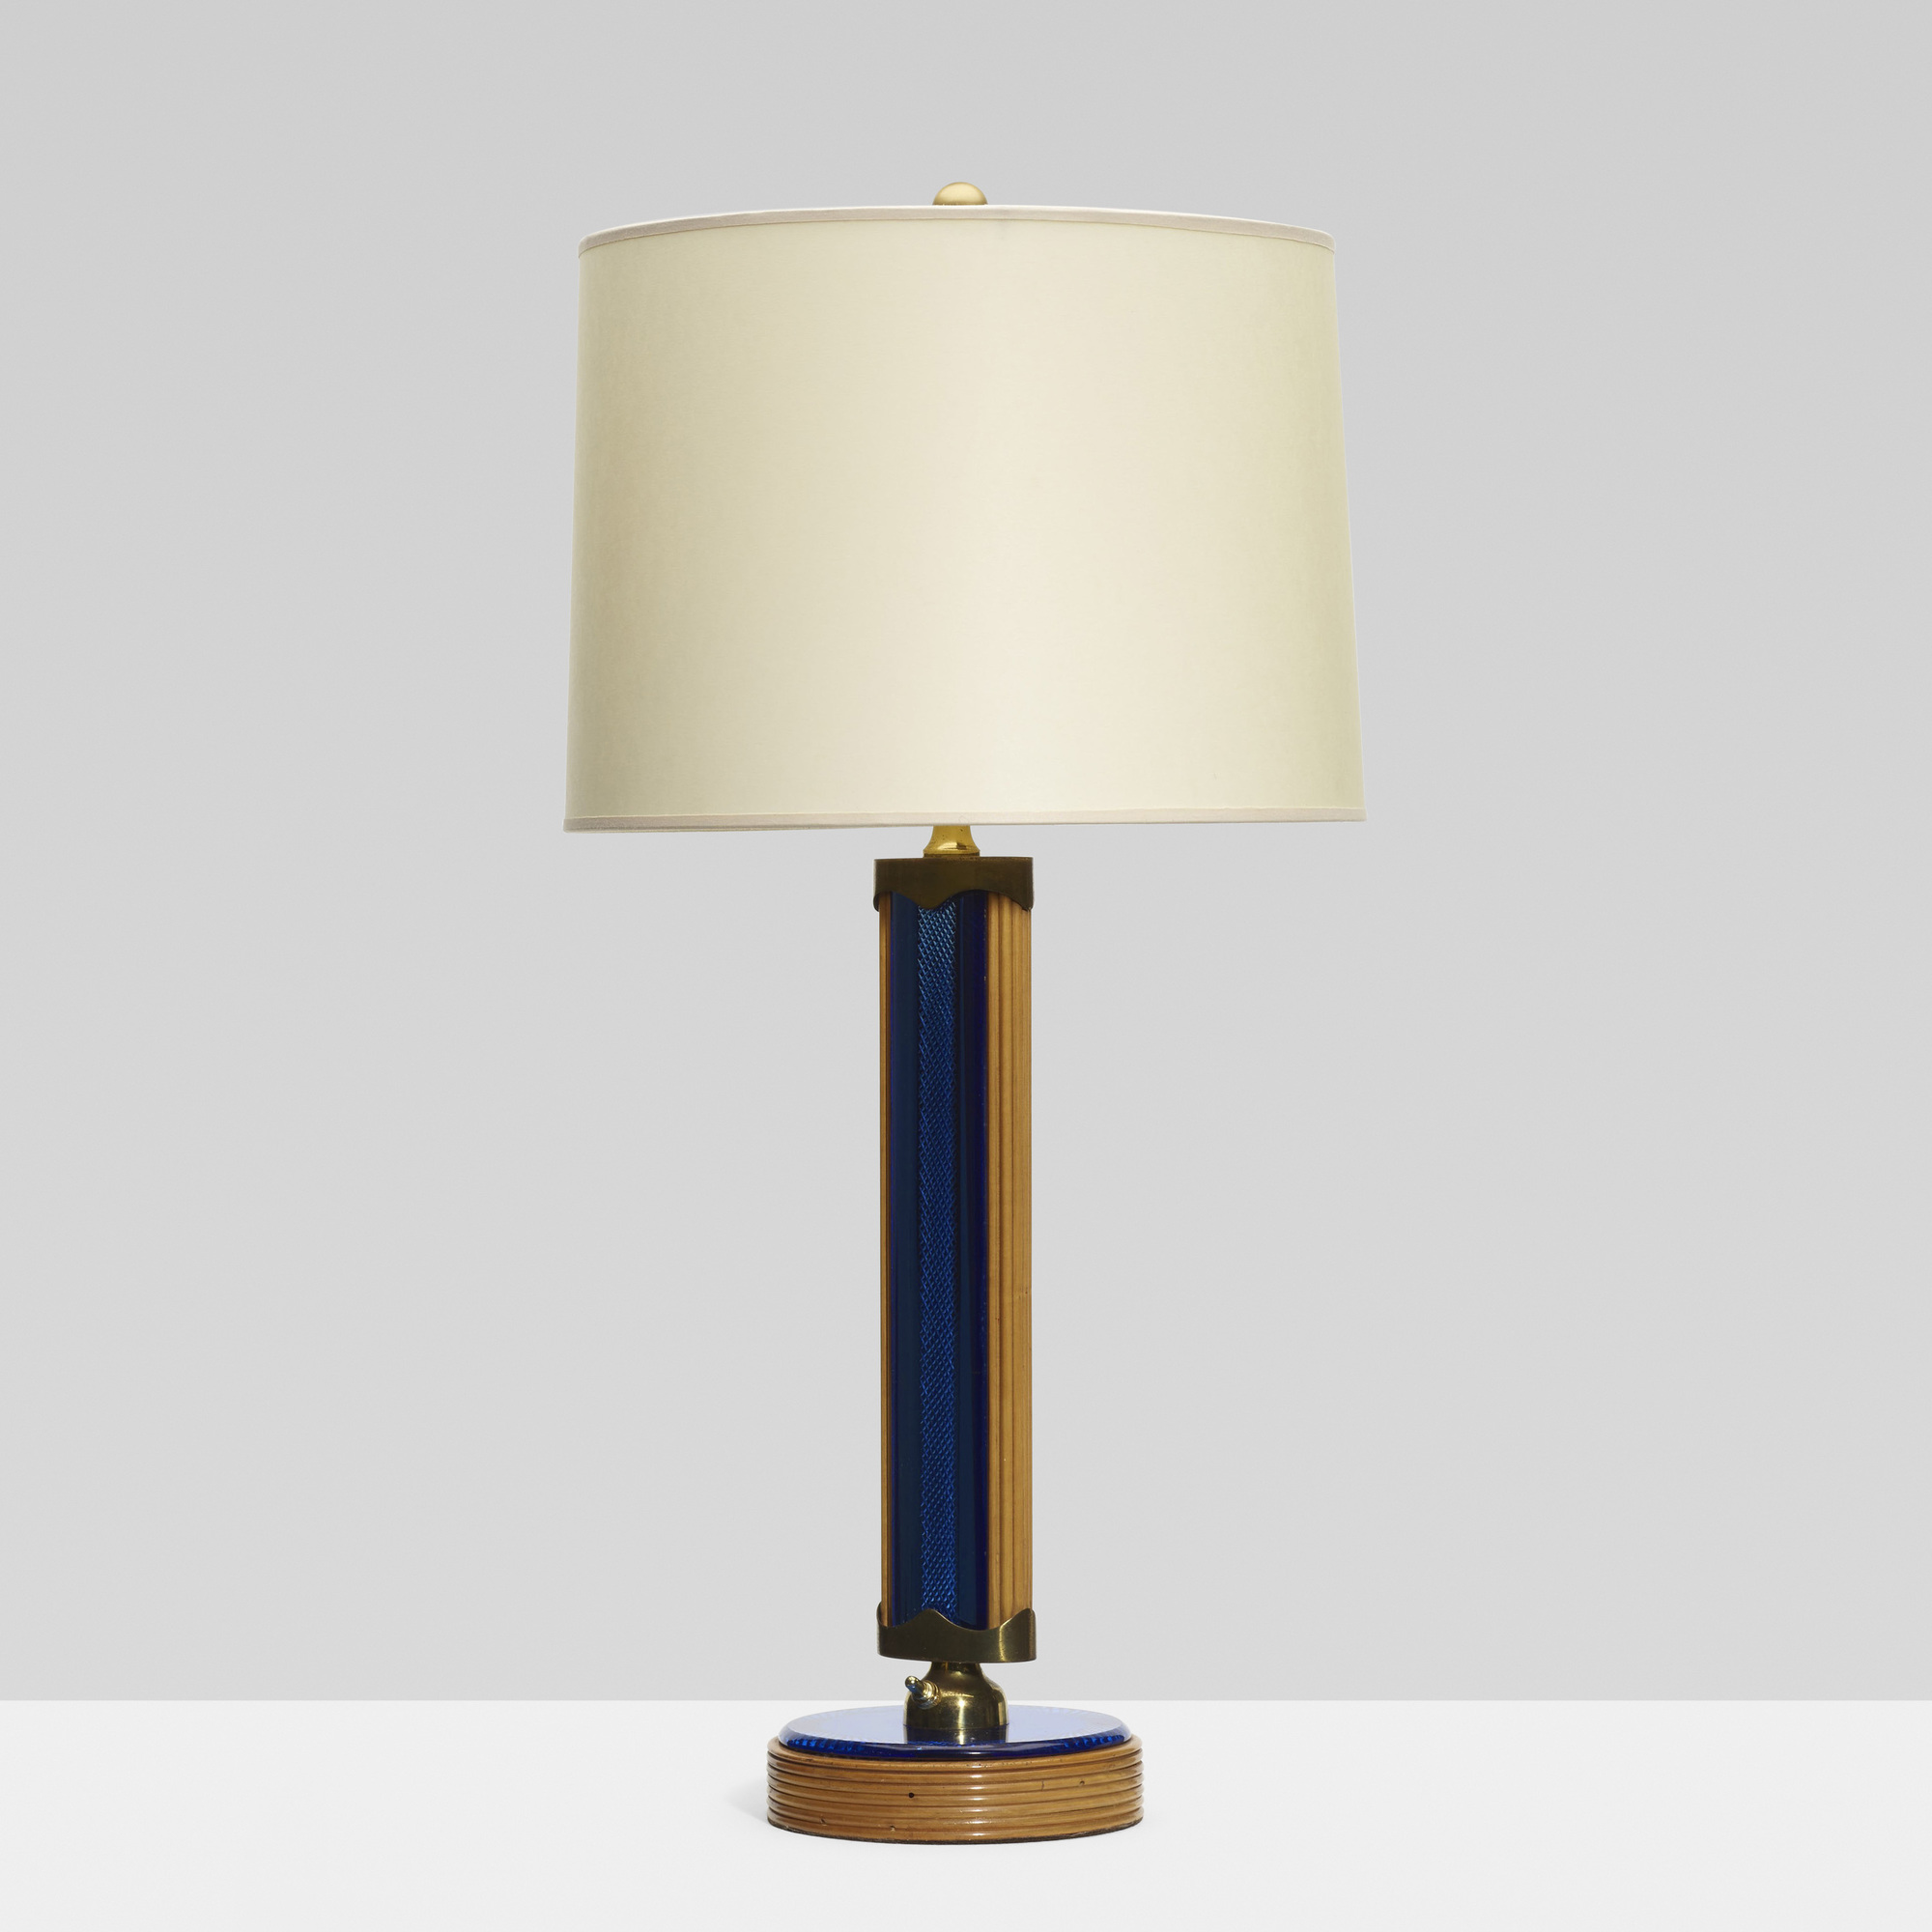 237: Pietro Chiesa / table lamp (2 of 3)